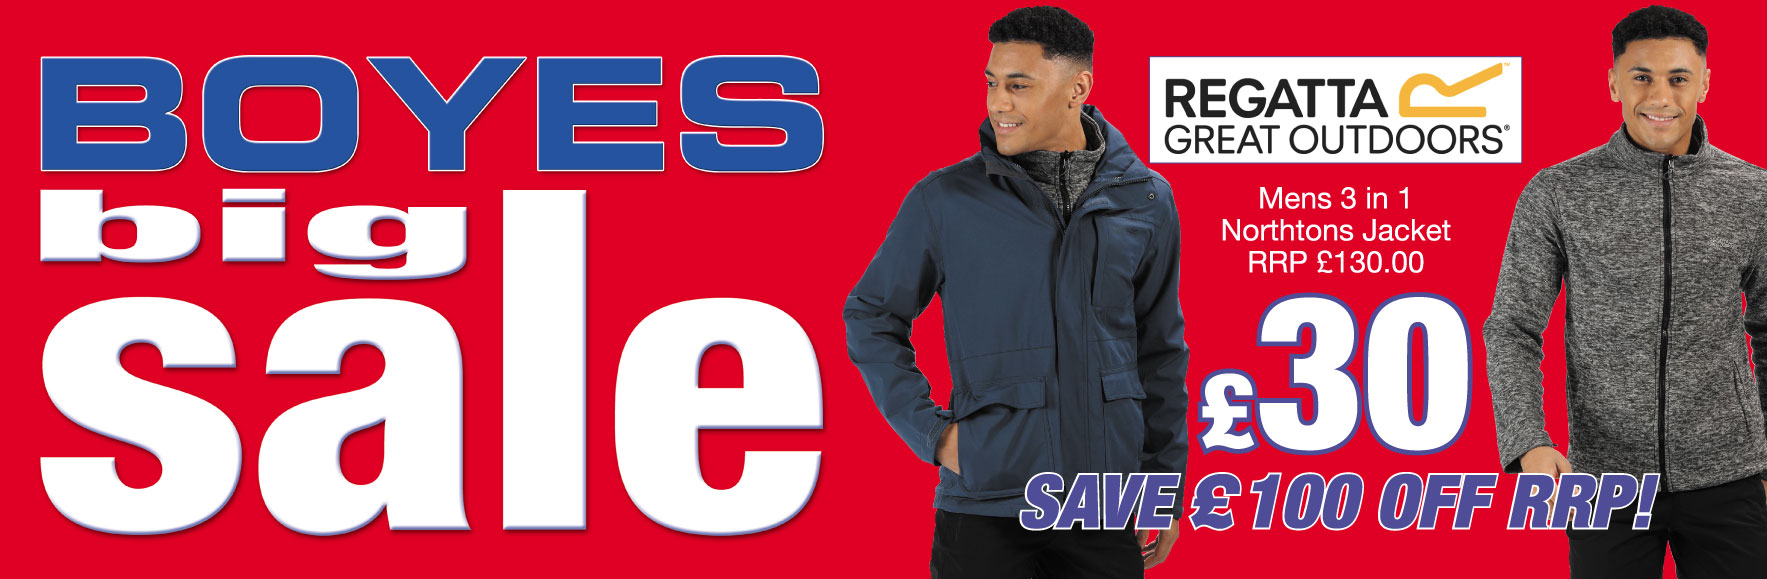 Regatta Mens 3 in 1 Northtons Jacket. RRP £130. ONLY £30. Save £100